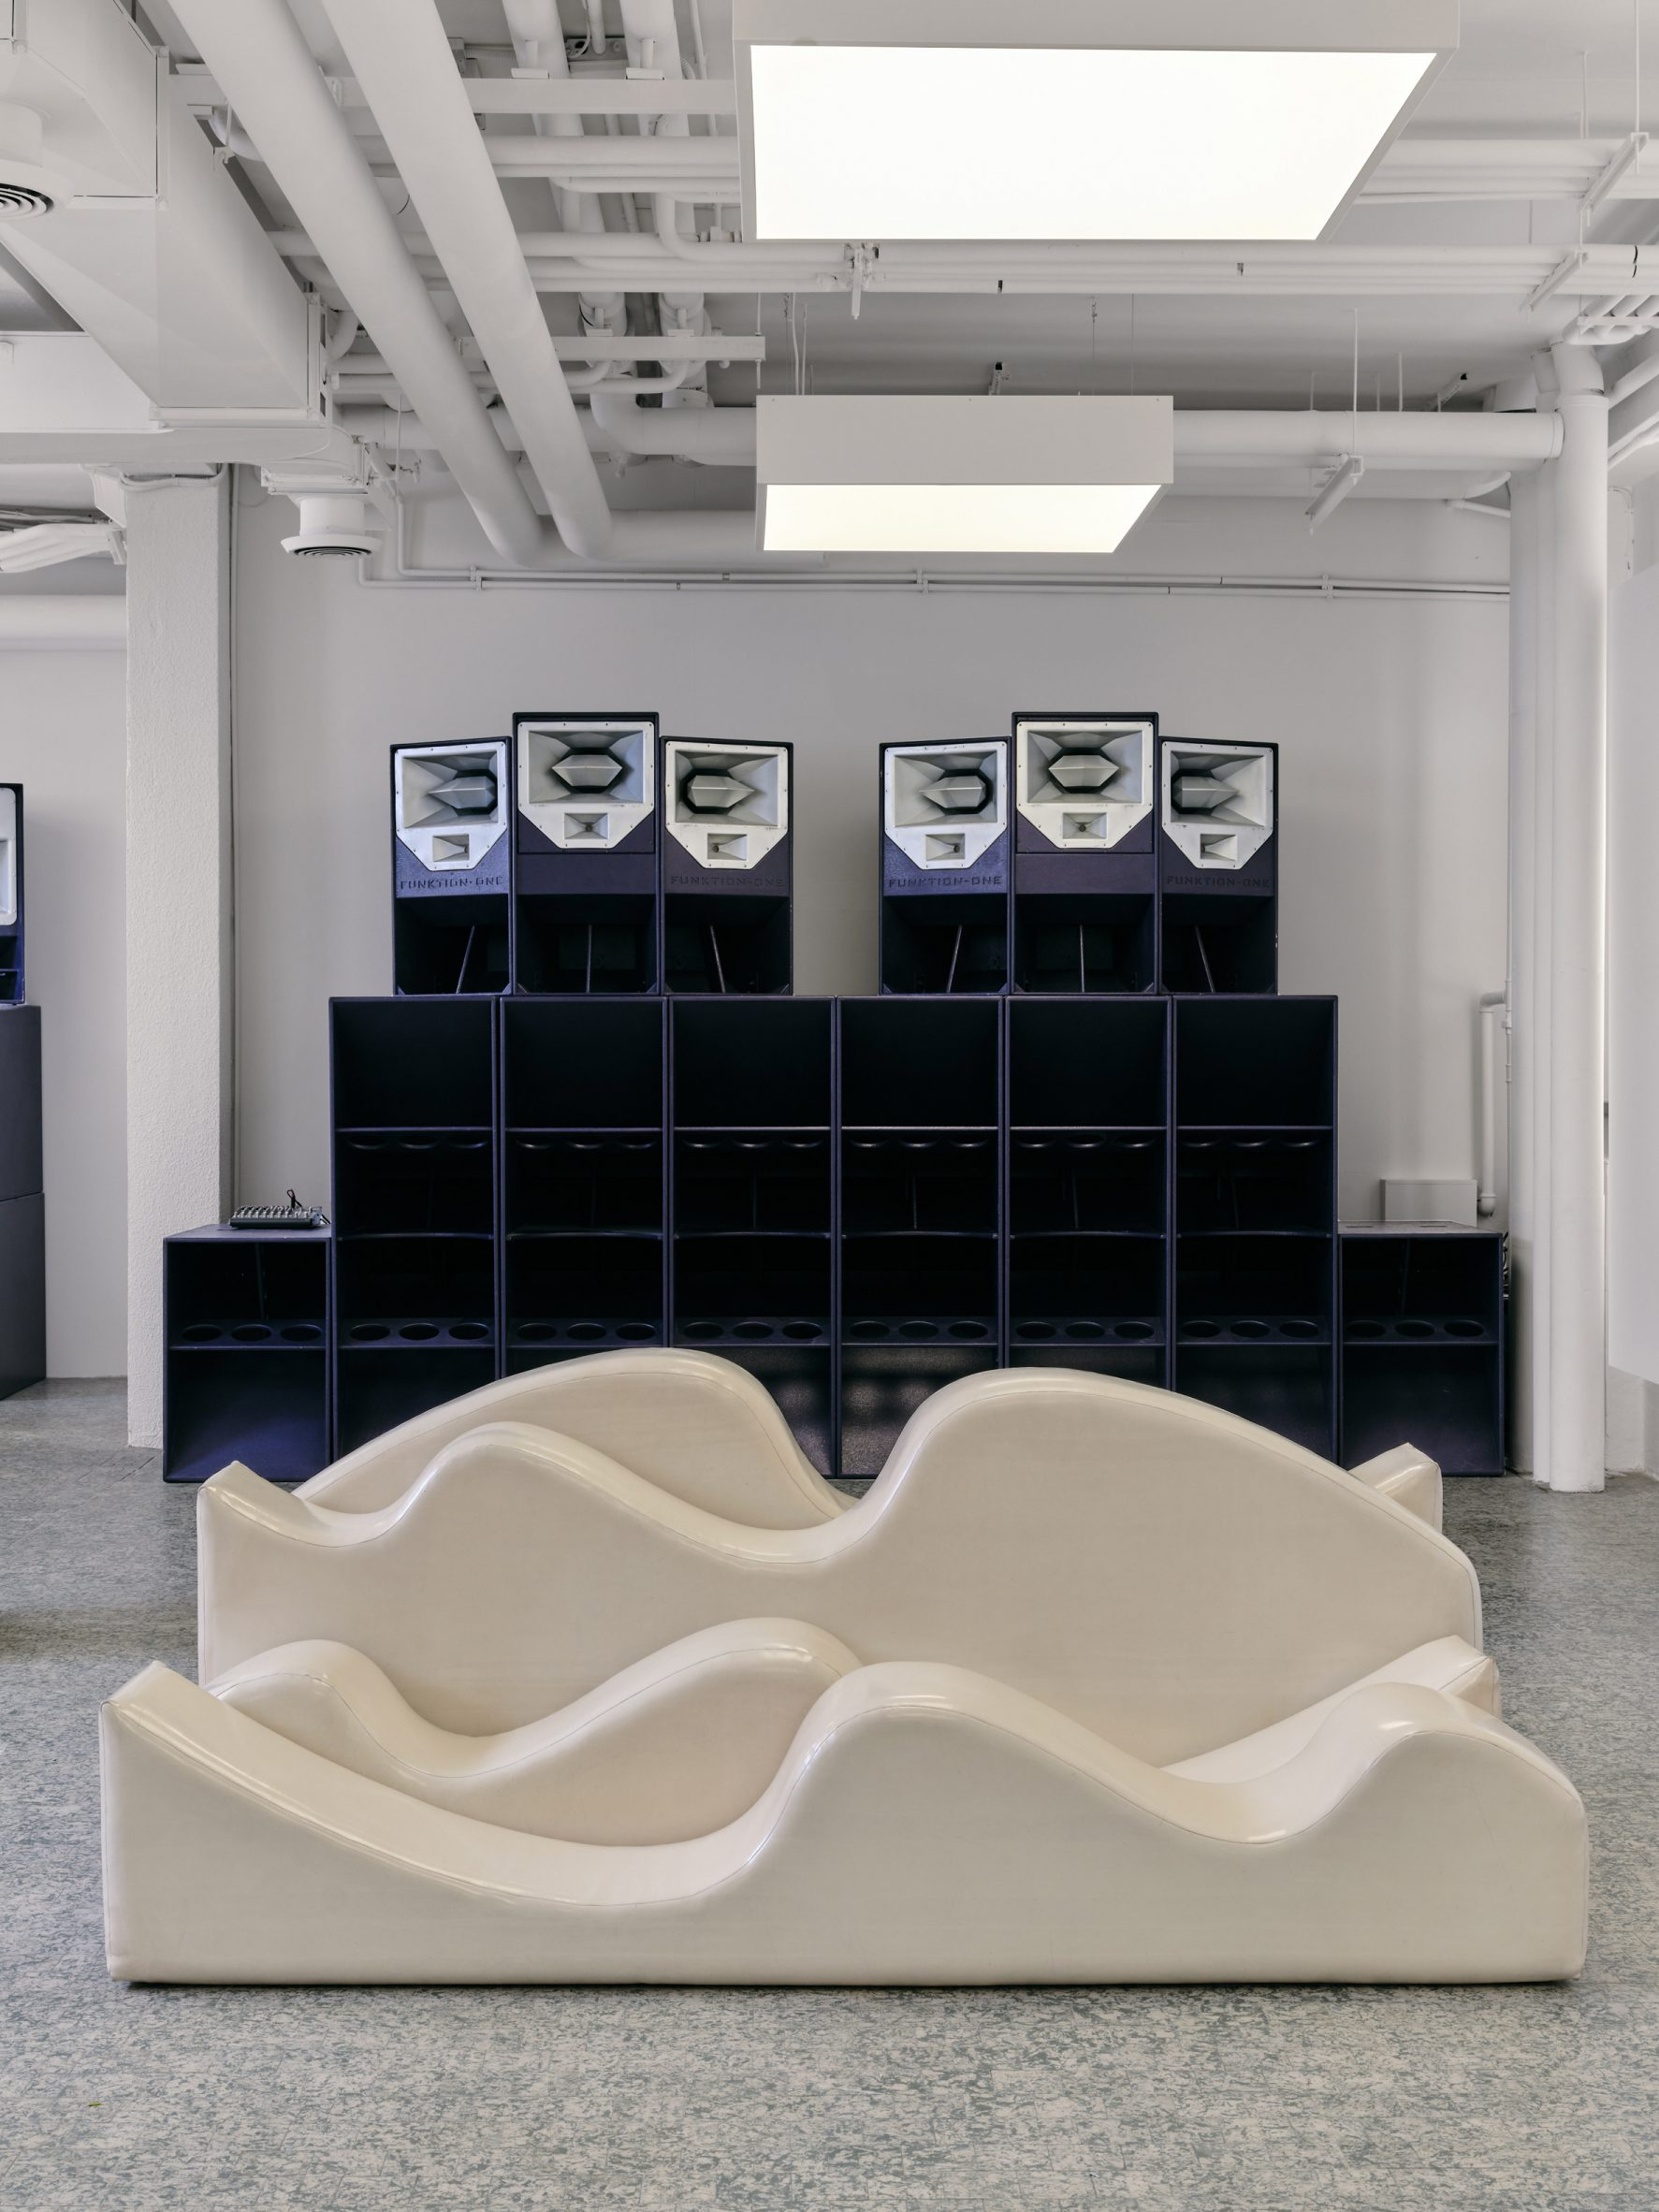 A wall of speakers occupies the rear of the showroom space